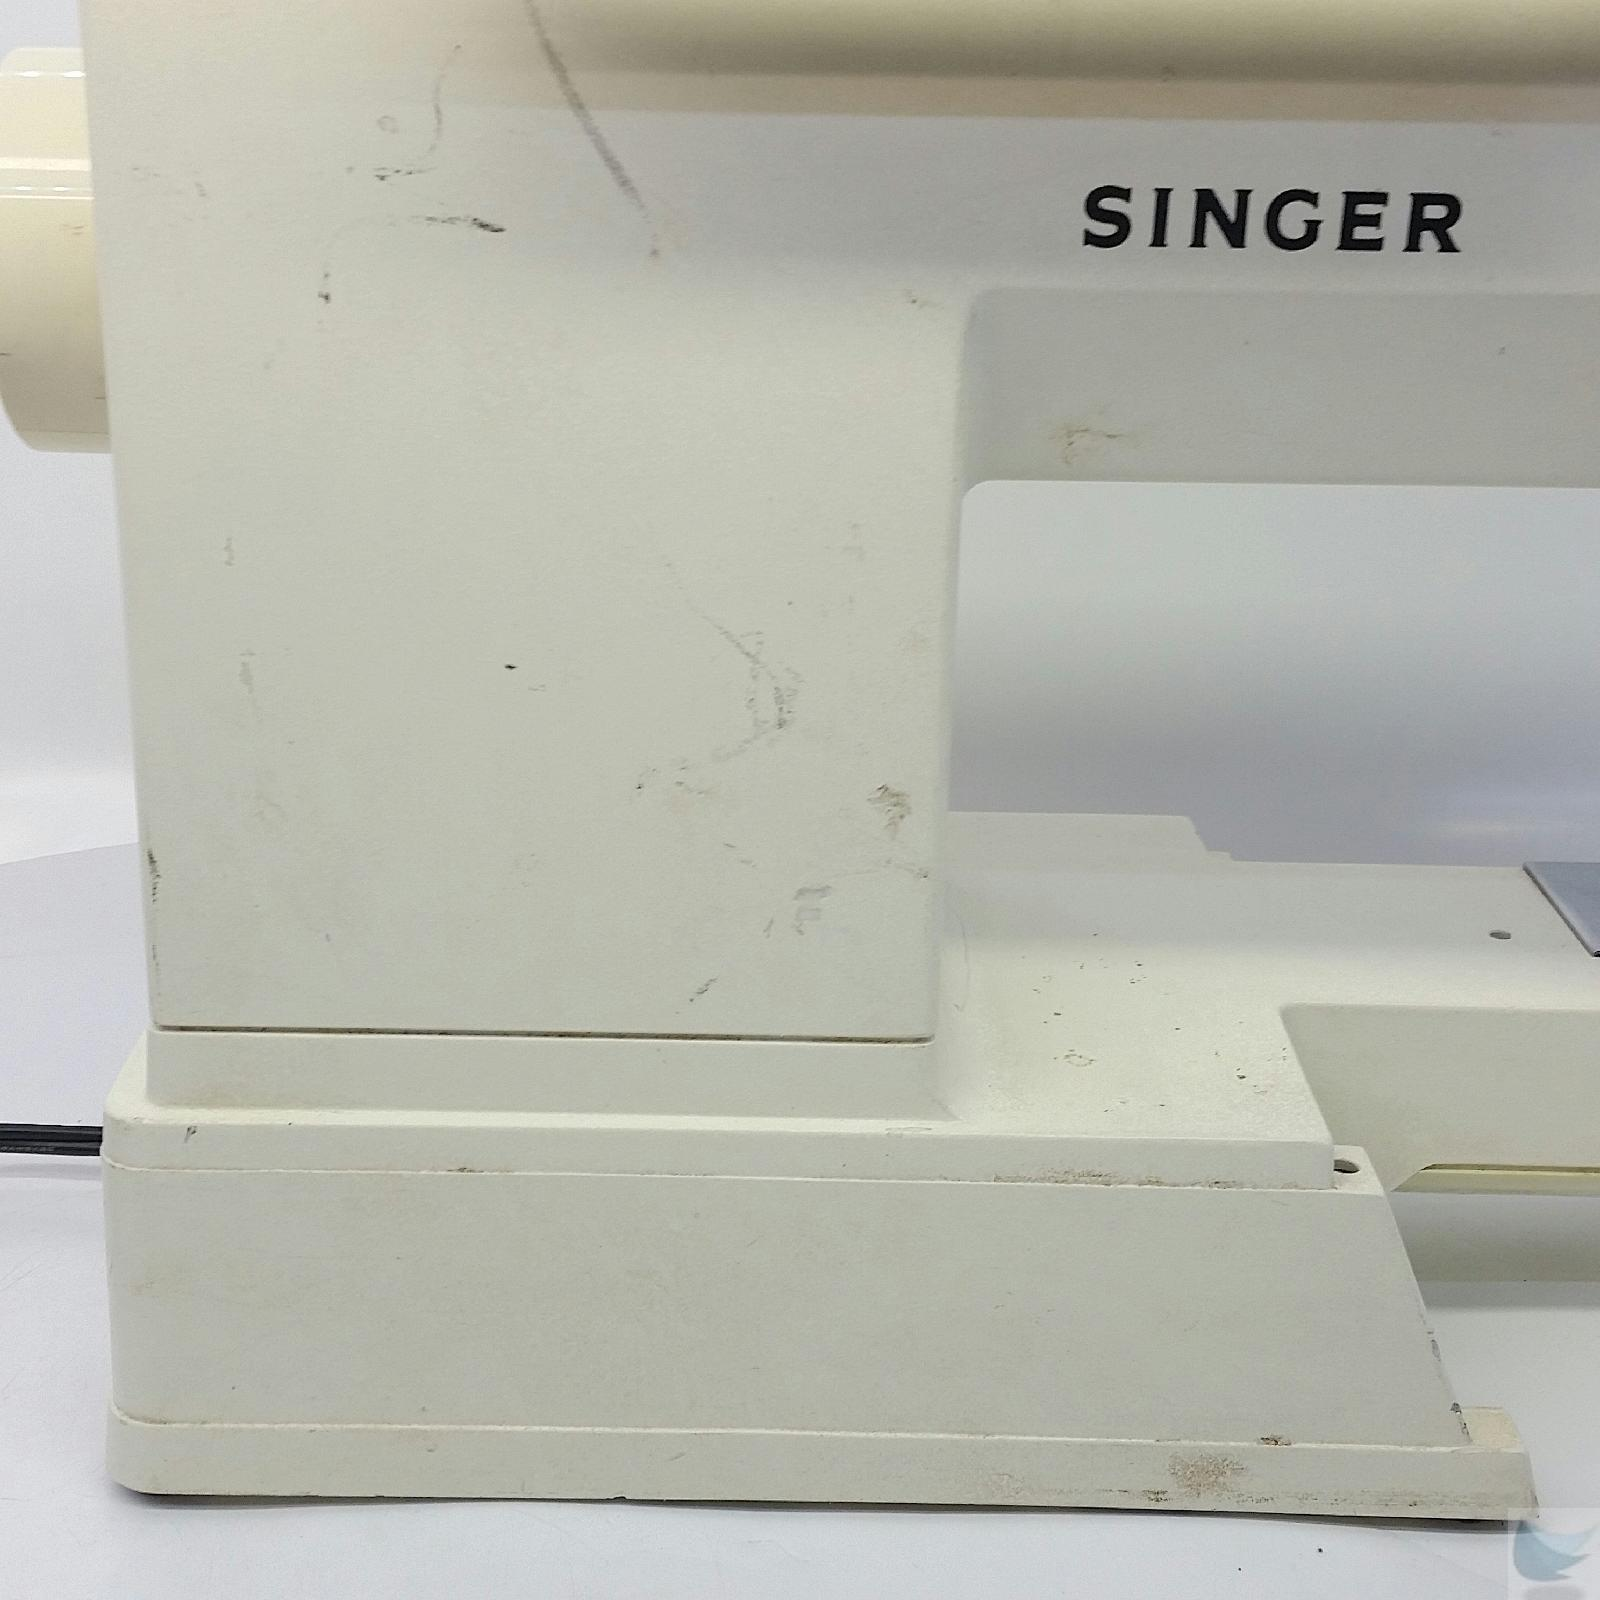 singer model 6233 sewing machine